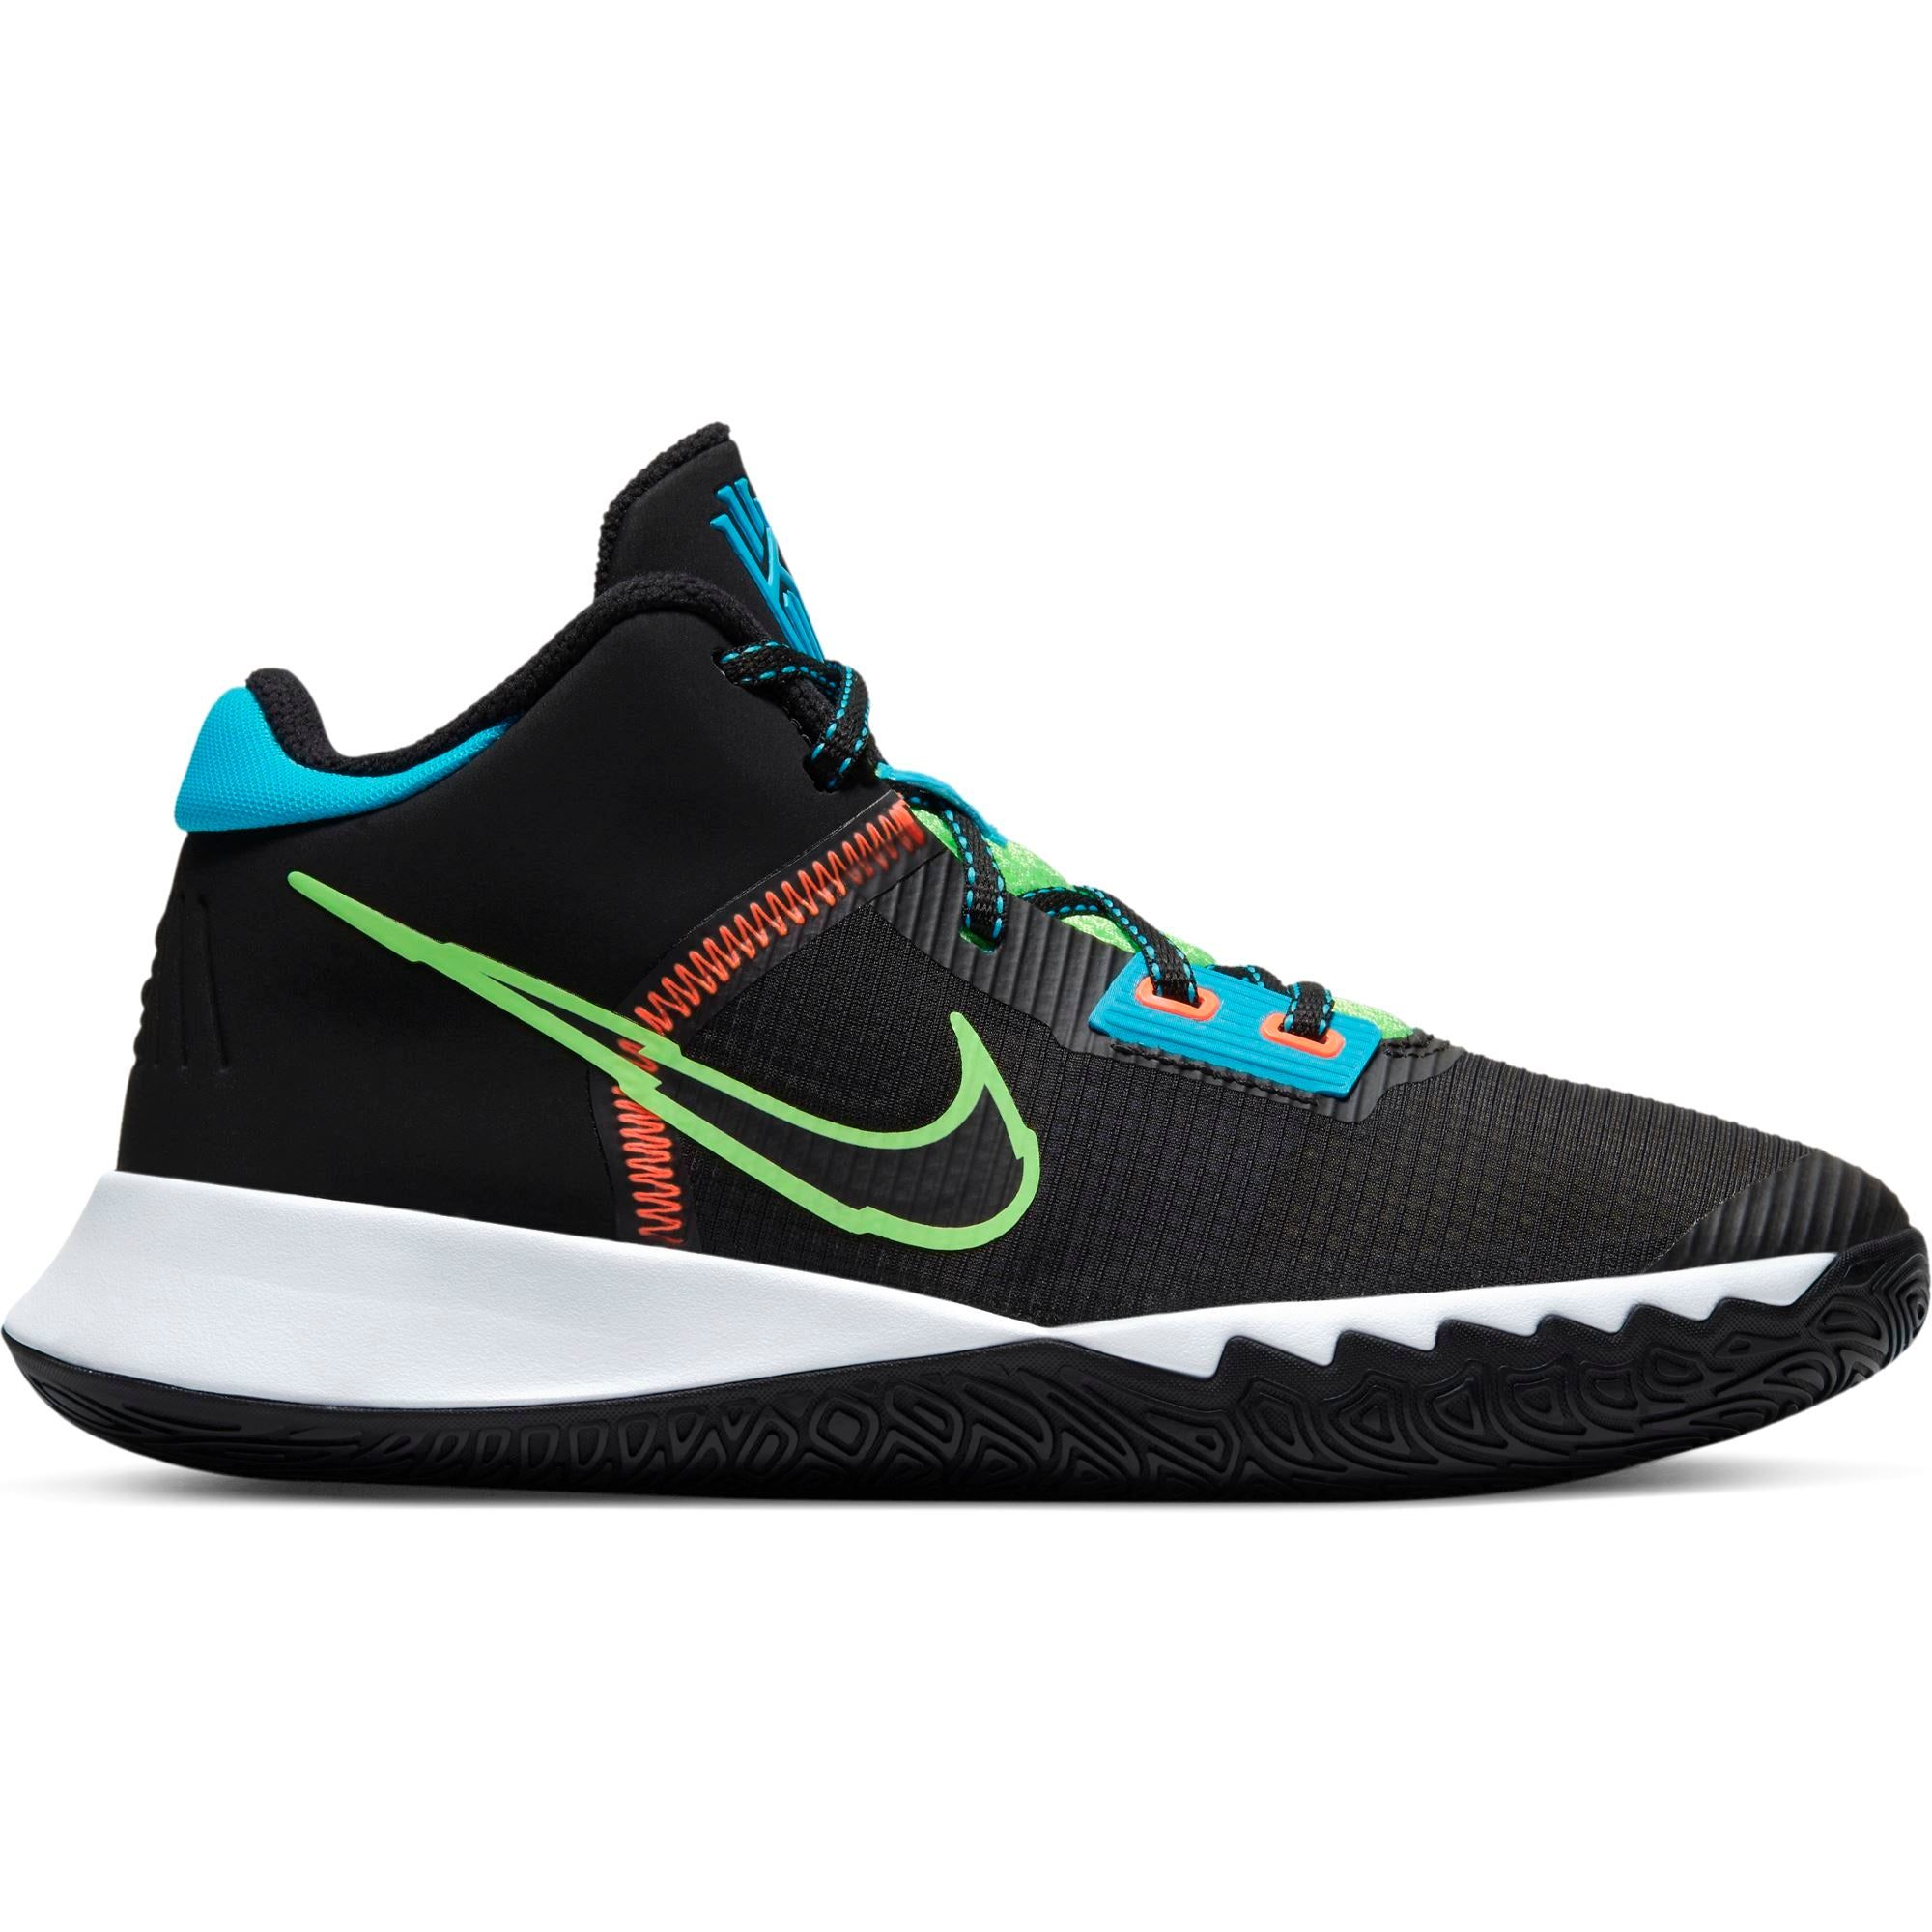 Nike Kyrie Flytrap 4 - Black/Lime Glow-Lagoon Pulse SP-Footwear-Mens Nike